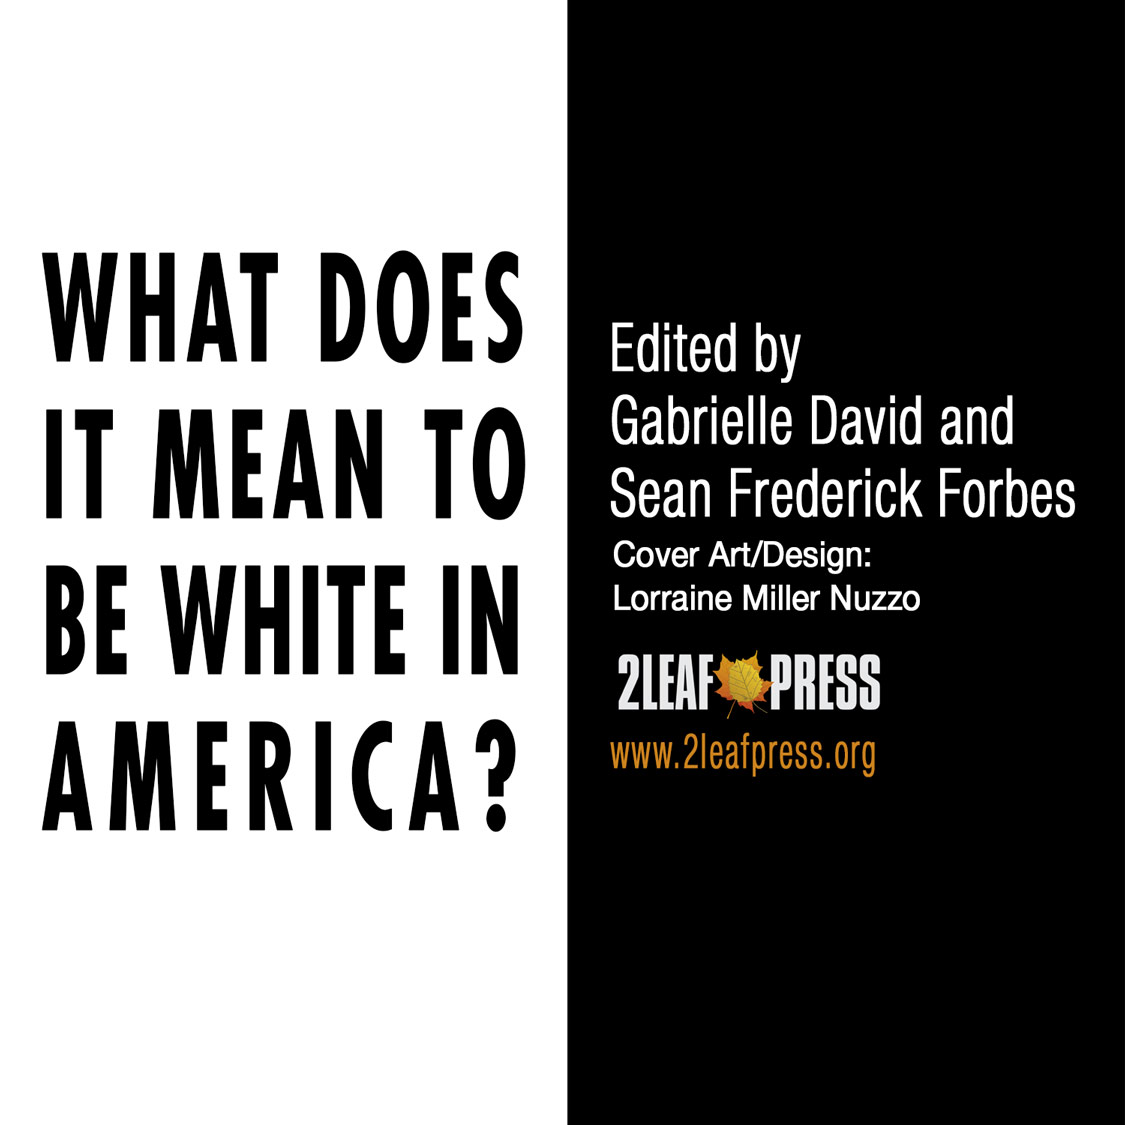 An Update on WHAT DOES IT MEAN TO BE WHITE IN AMERICA?